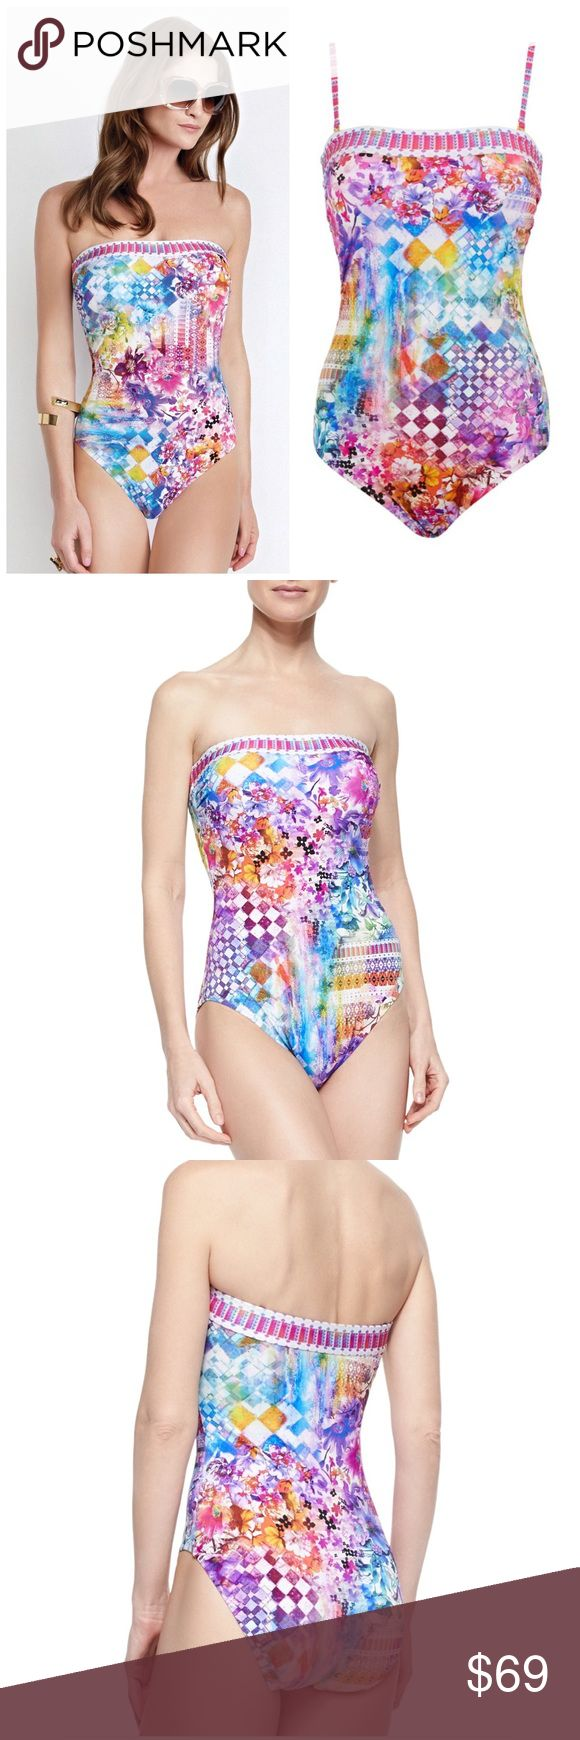 GOTTEX IMPRESSIONS BANDEAU ONE PIECE SWIMSUIT 16 Sizzle on your next exotic getaway 🌞 in this Gottex Impressions swimsuit. $182 retail price brand new with tags DETAILS Covered in a vibrant print, this eye-catching one piece features removable and adjustable shoulder straps, a bandeau neckline and soft padded cups for a supportive finish. Perfect for stylish sun-seekers, pair it with oversized shades for instant poolside glamour. 72% polyamide, 28% elastane. Hand wash. Gottex Swim One…